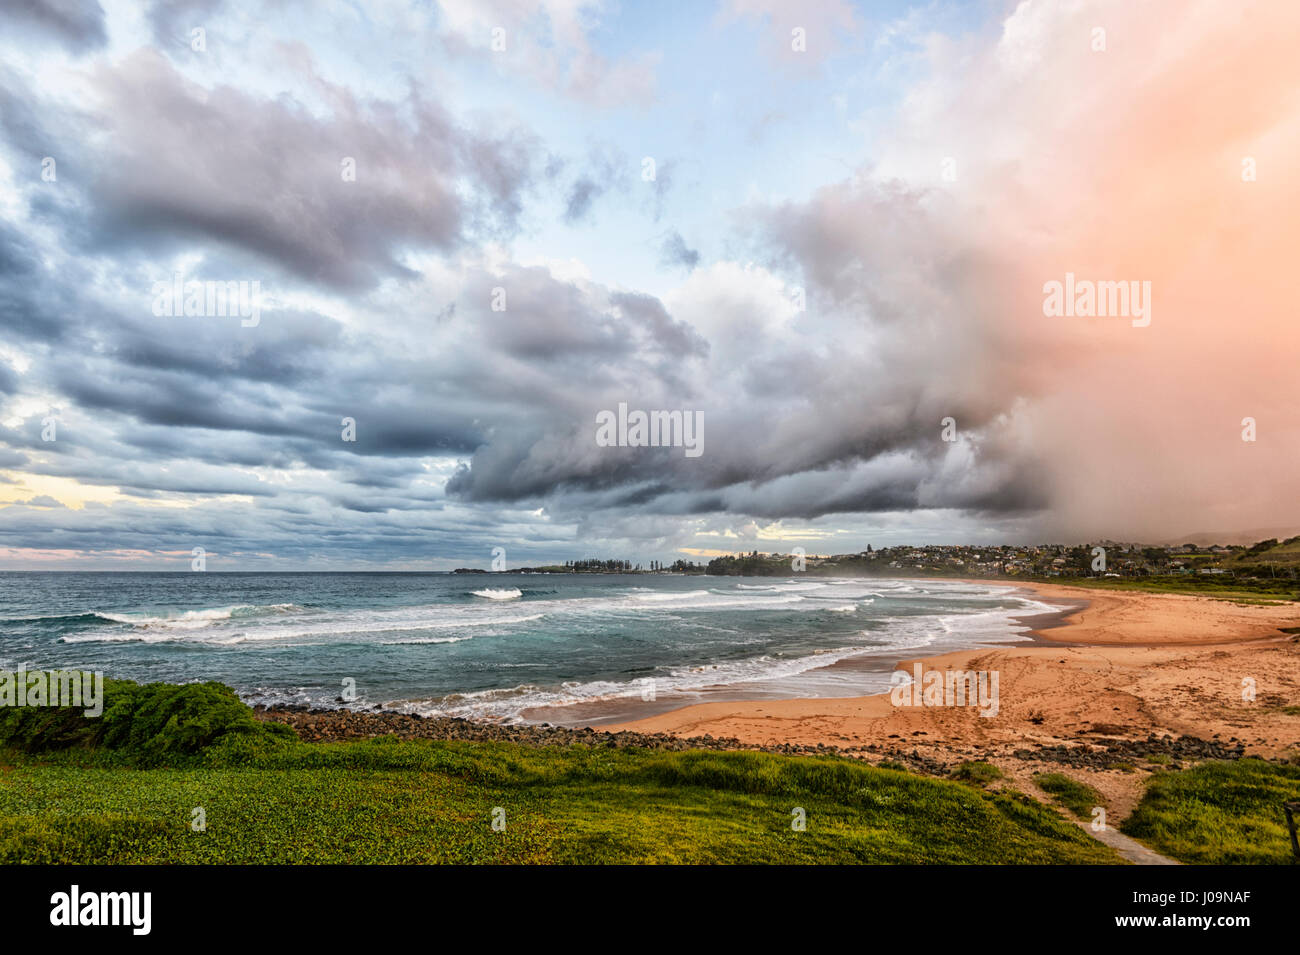 Dramatic view of an impending storm over Bombo Beach, Kiama, Illawarra Coast, New South Wales, NSW, Australia - Stock Image